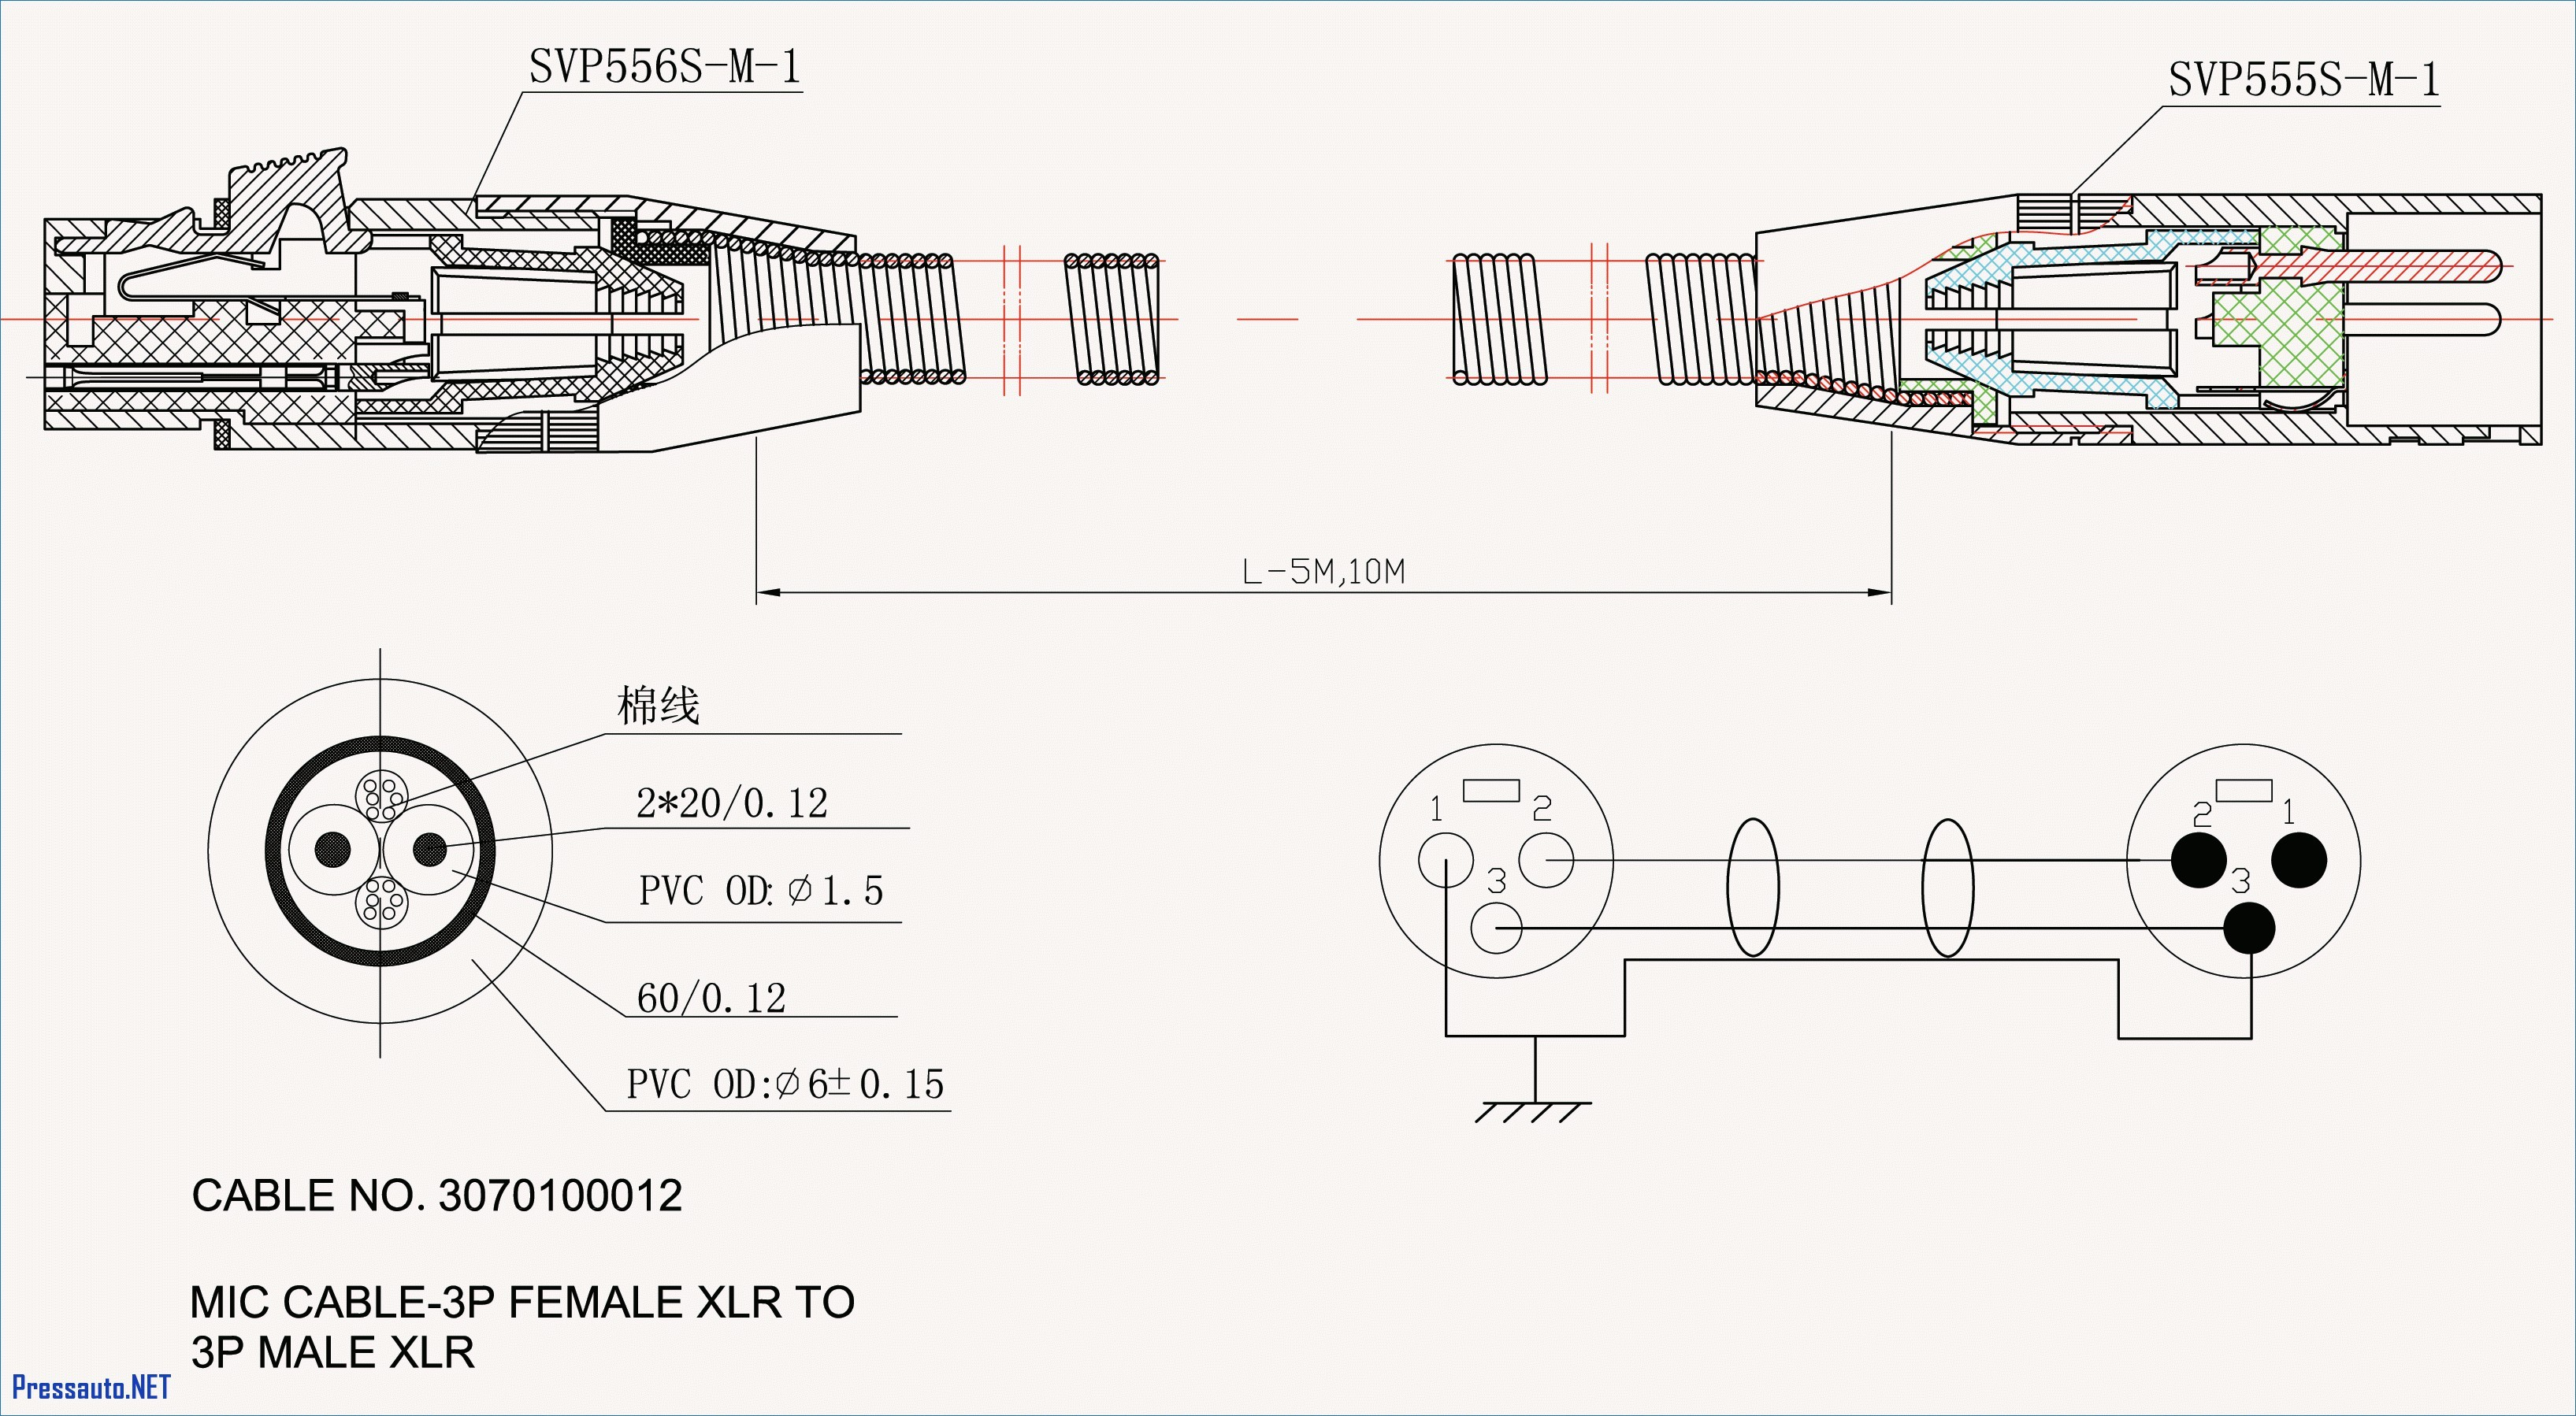 Wiring Diagram for Cat5 Cable Beautiful 3 Wire Microphone Wiring Diagram Xlr Connector at In Wiring Diagram Inside Cable